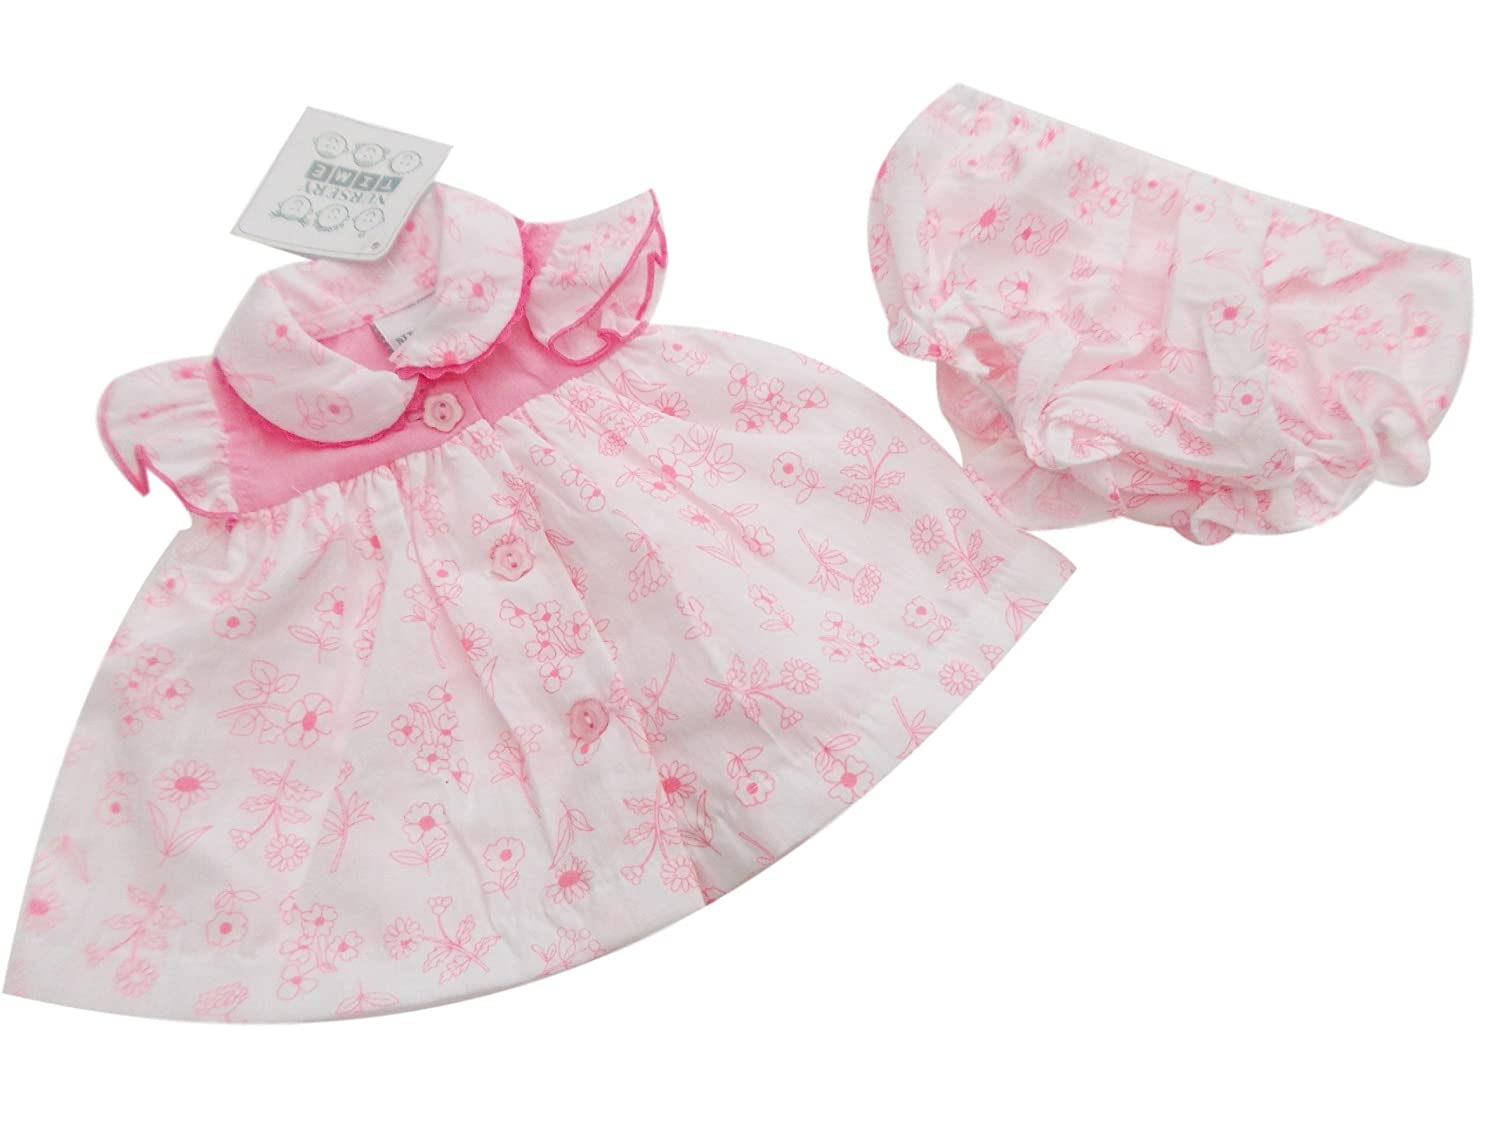 461ef0d01fd1 BNWT Tiny Baby NB Prem Premature Preemie Baby Girls Clothes floral dress  outfit (3-5lb ): Amazon.co.uk: Baby